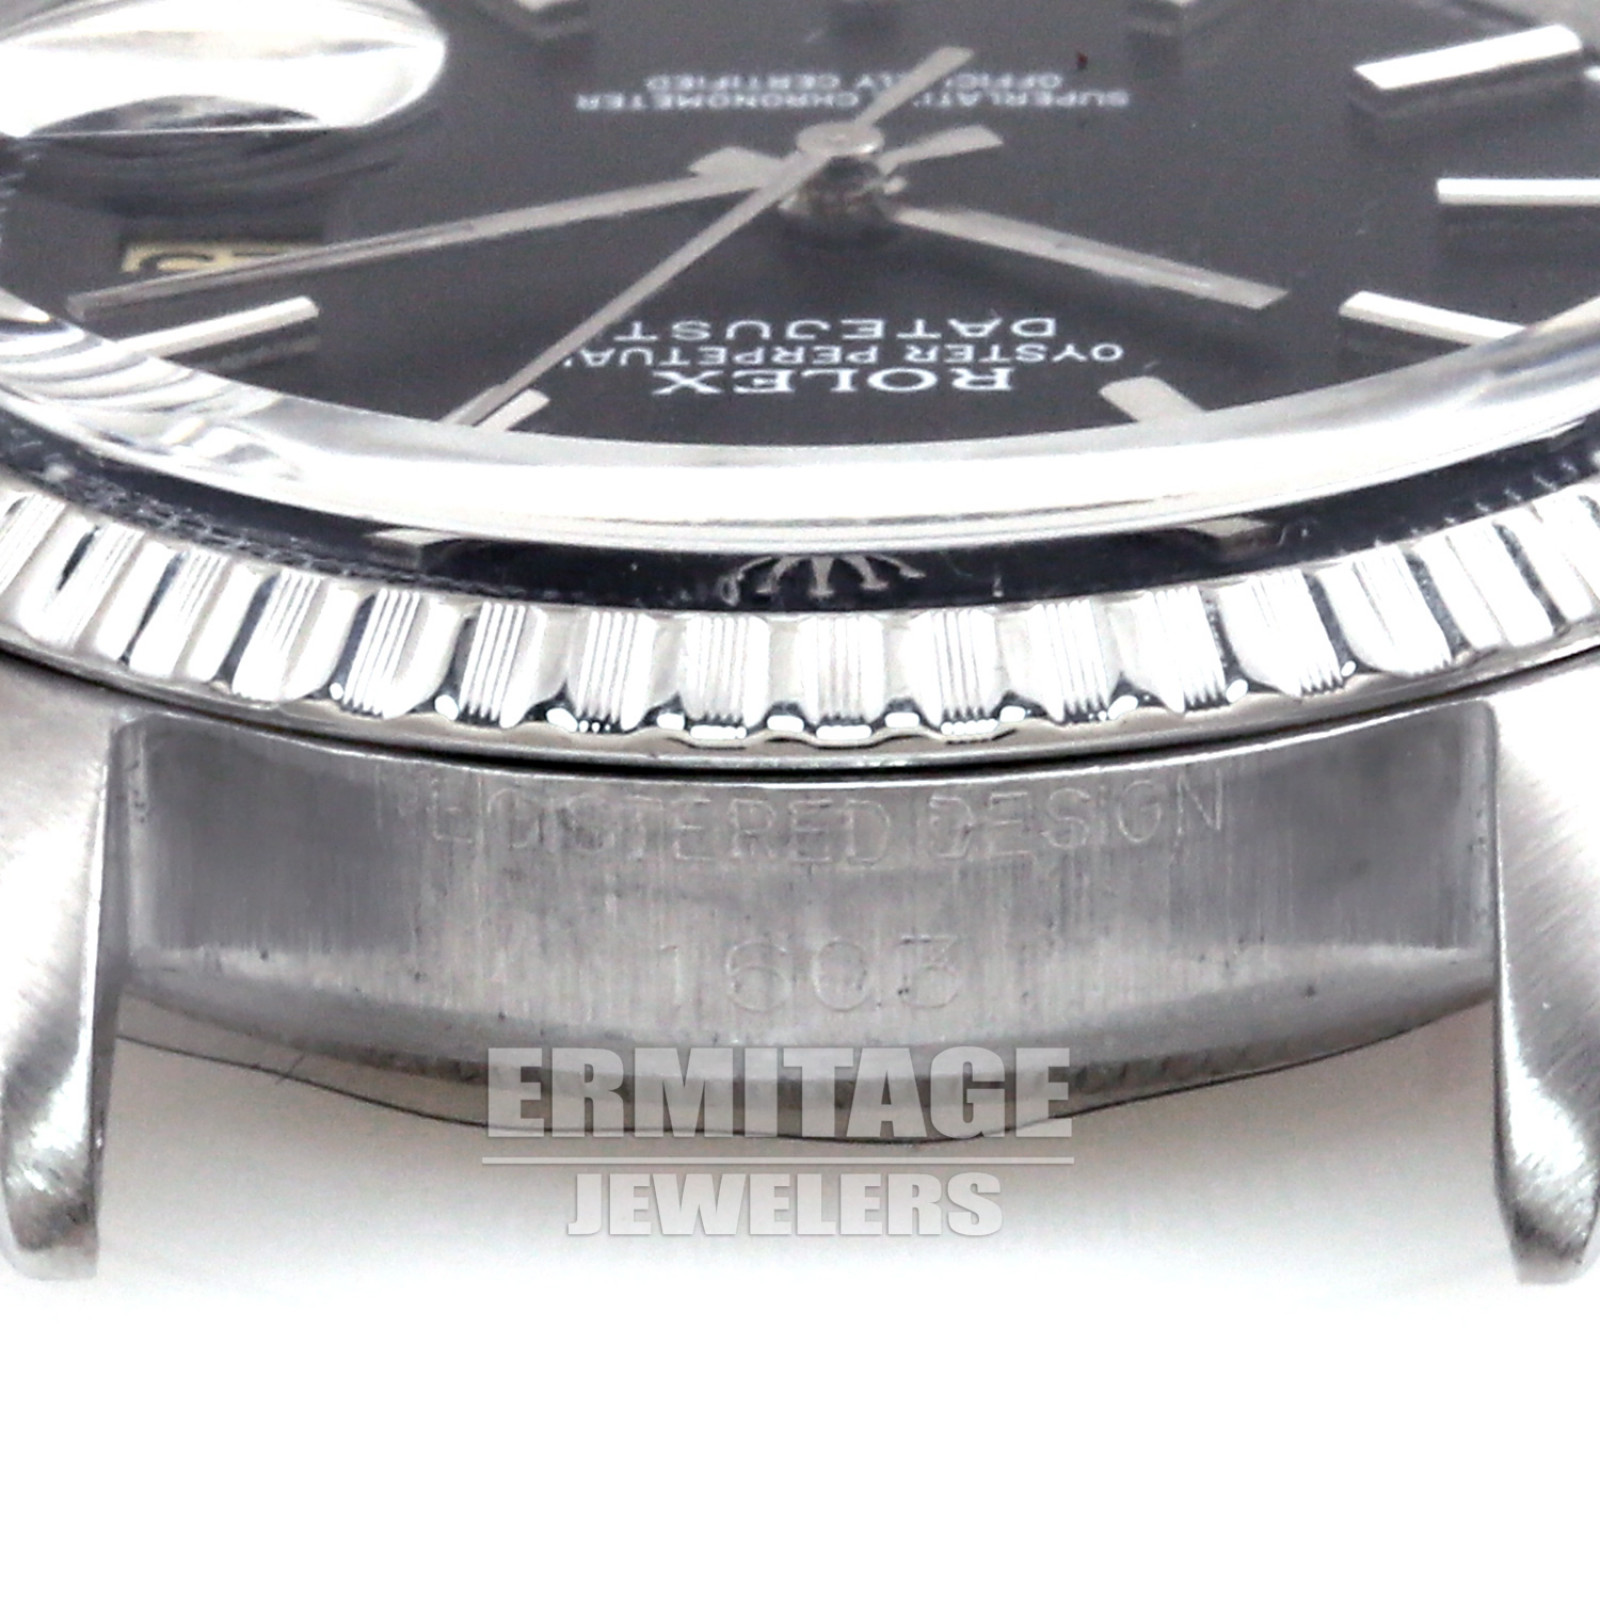 Rolex Datejust 1603 with Black Dial